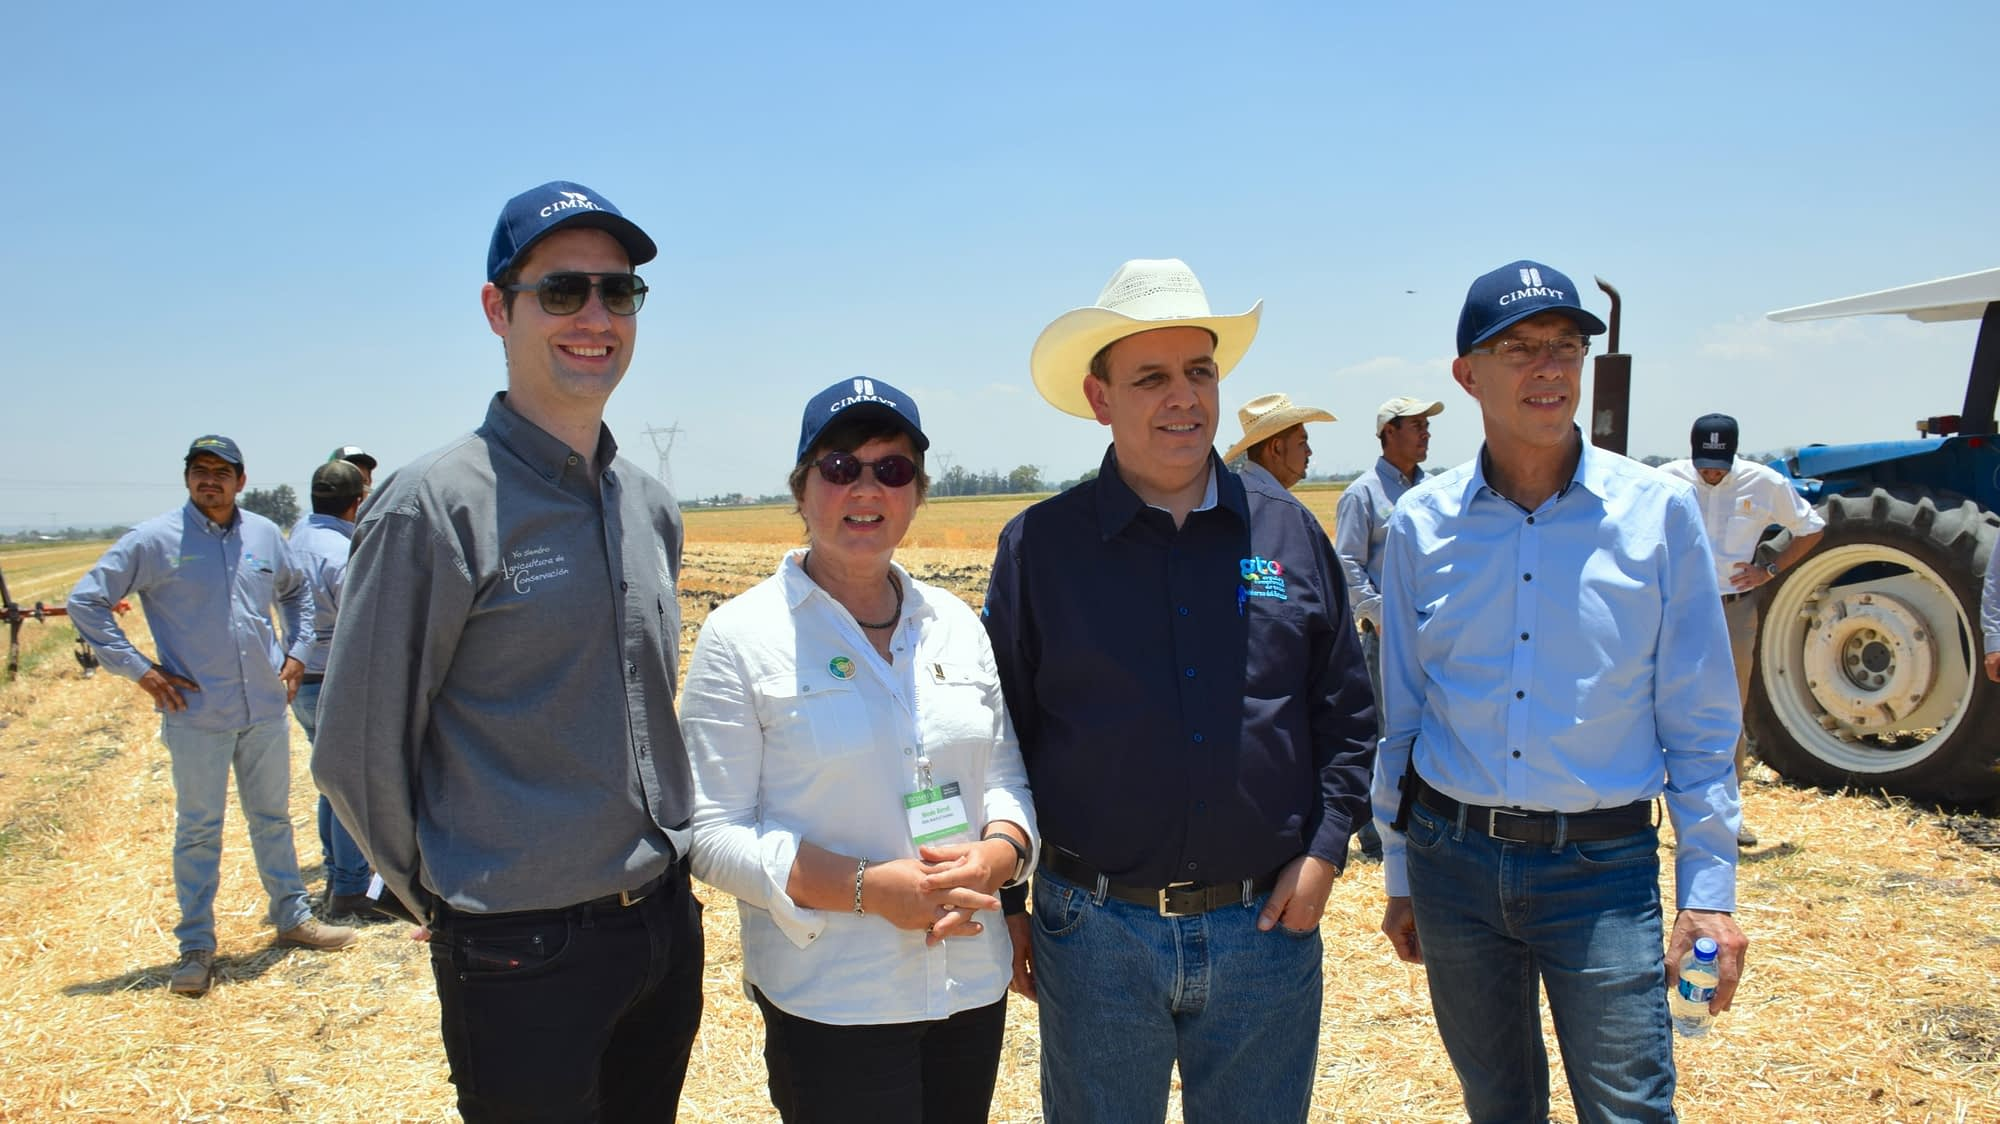 Bram Govaerts (left), Nicole Birrell (second from left) and Martin Kropff (right) stand for a group photo with José Francisco Gutiérrez Michel (second from right), Secretary of Agri-Food and Rural Development of Mexico's Guanajuato state.